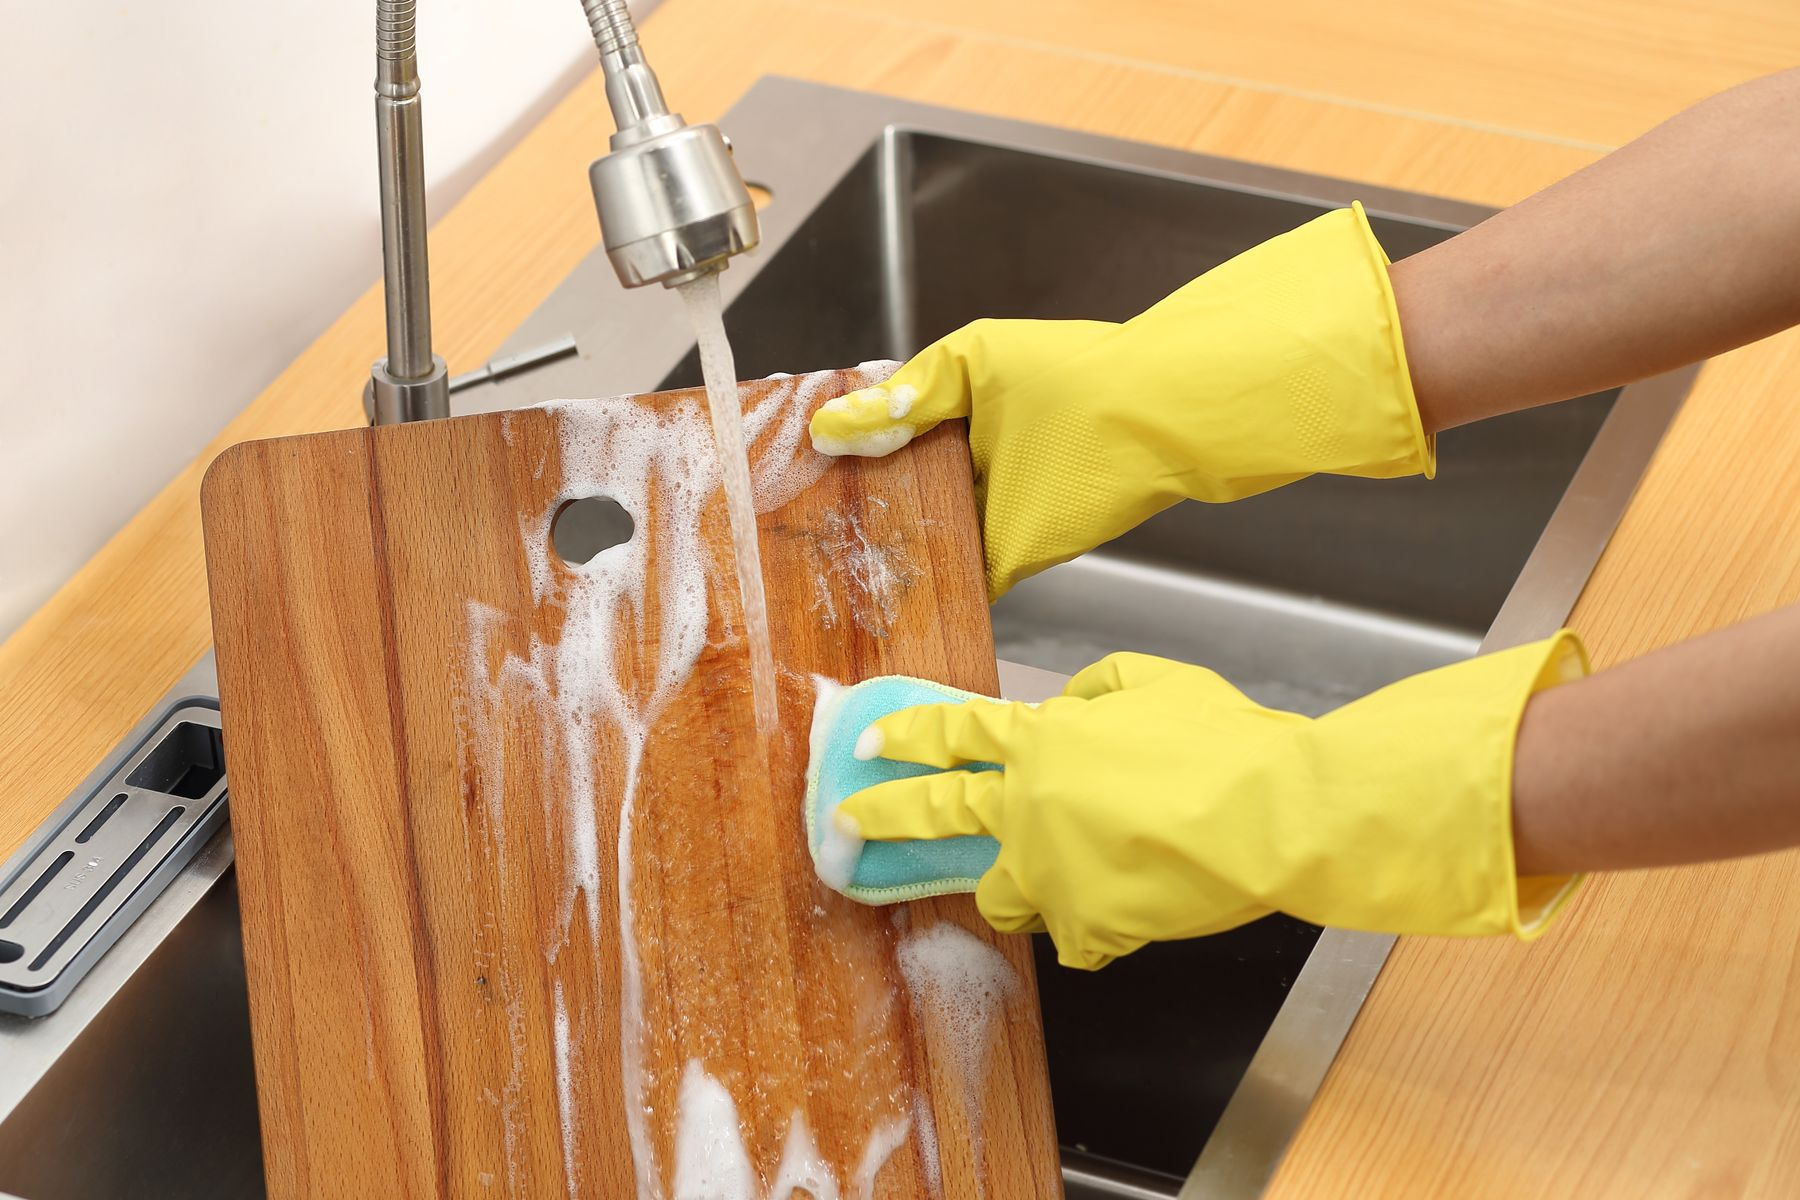 Step 6: Washing a wooden chopping board with hot soapy water in a sink